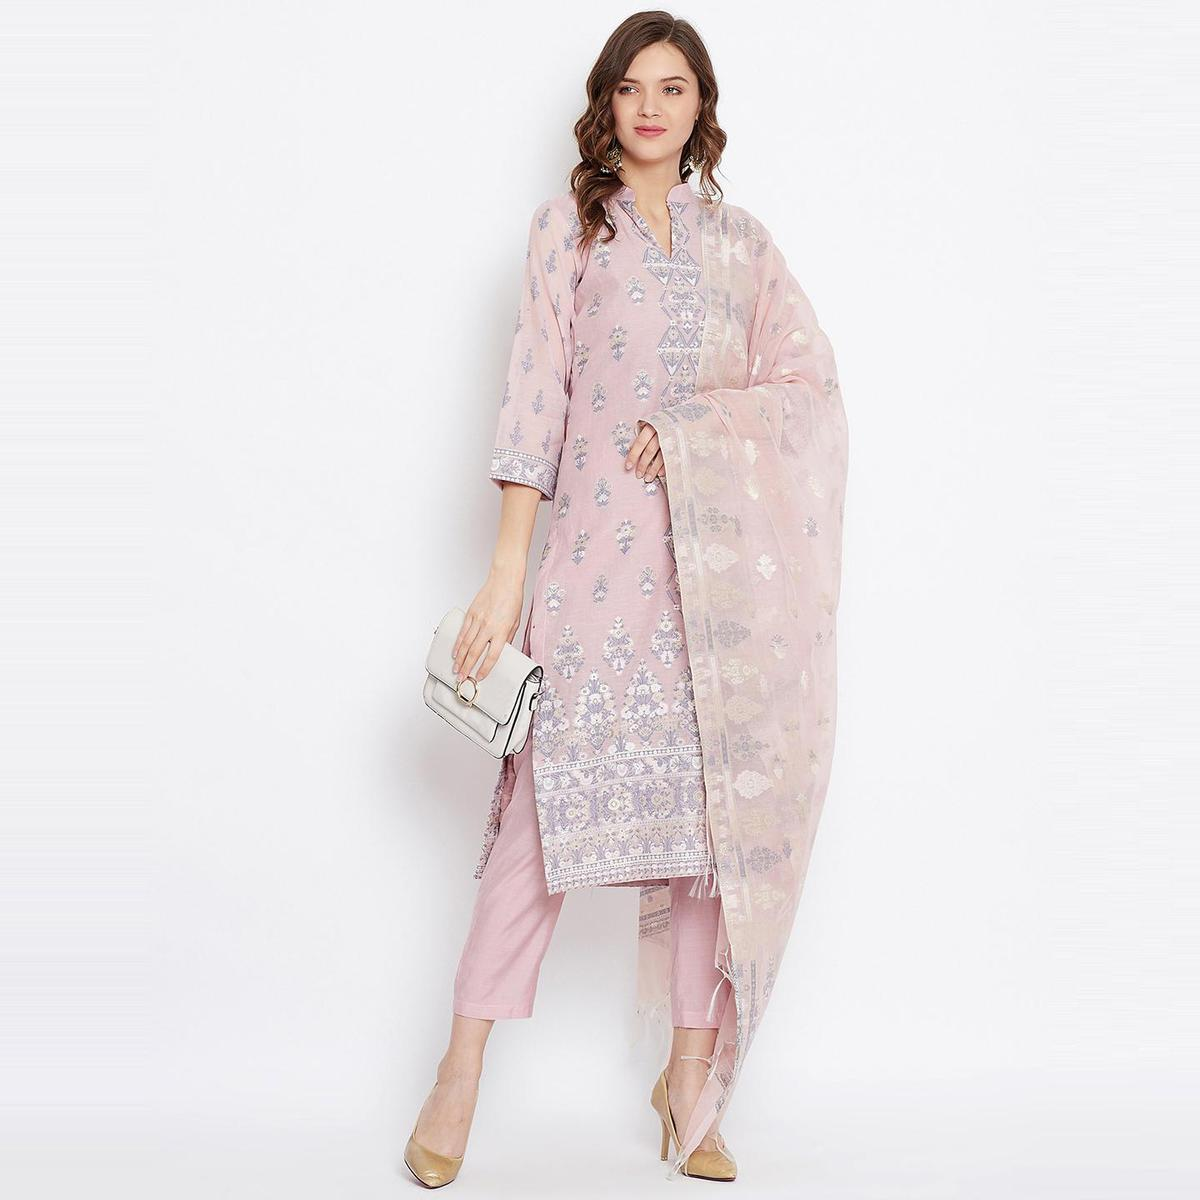 Safaa - Light Pink Colored Organic Cotton Woven Design Women Unstitched Dress Material With Dupatta